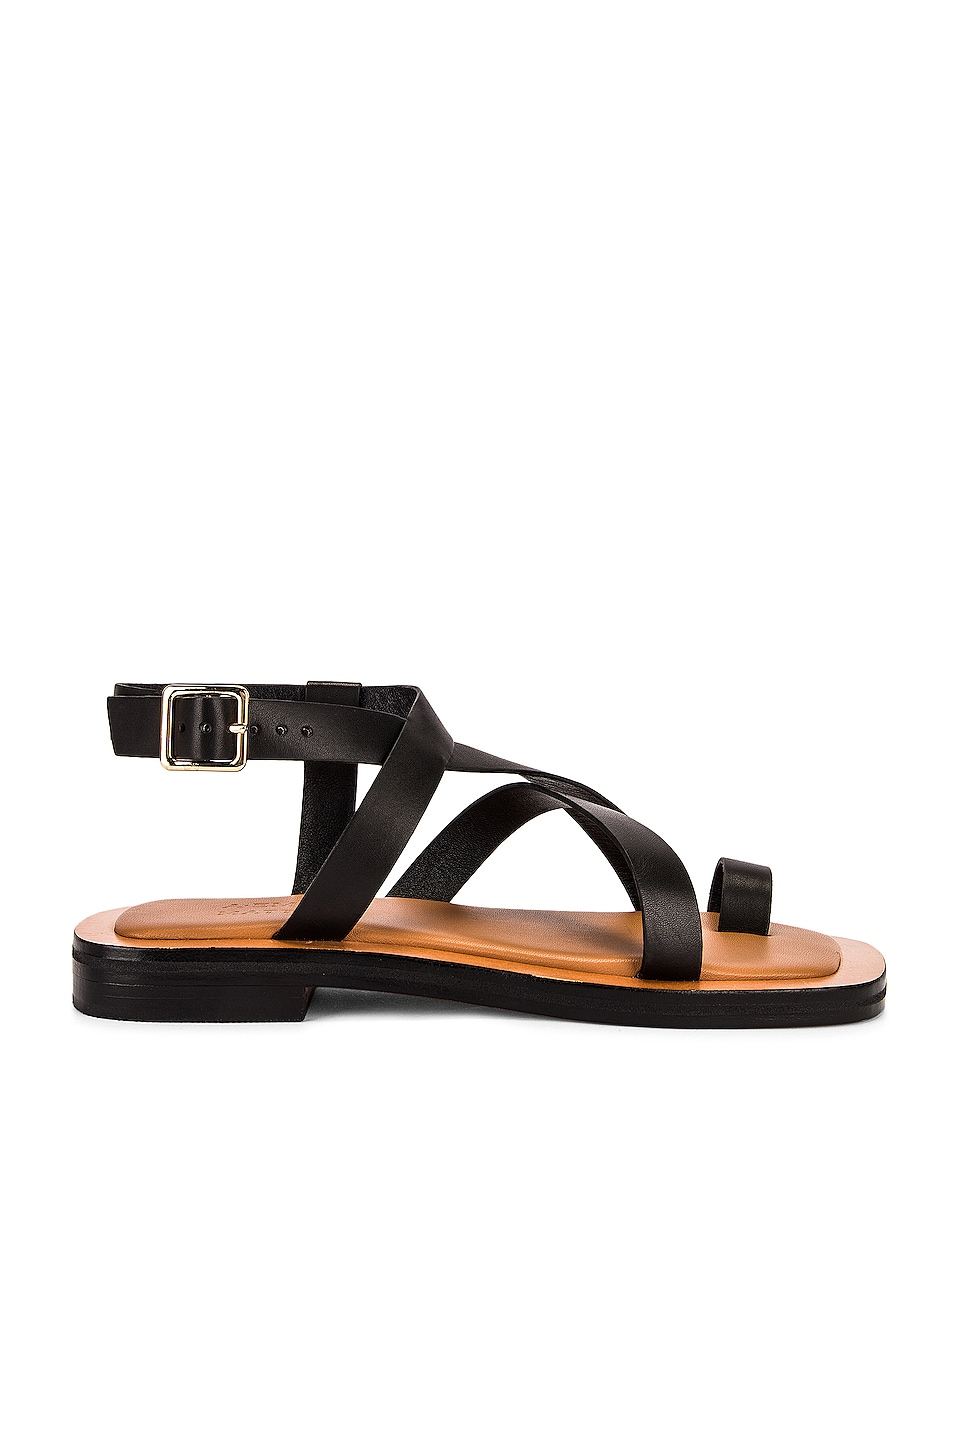 Image 1 of A.EMERY x Matteau Spargi Sandal in Black